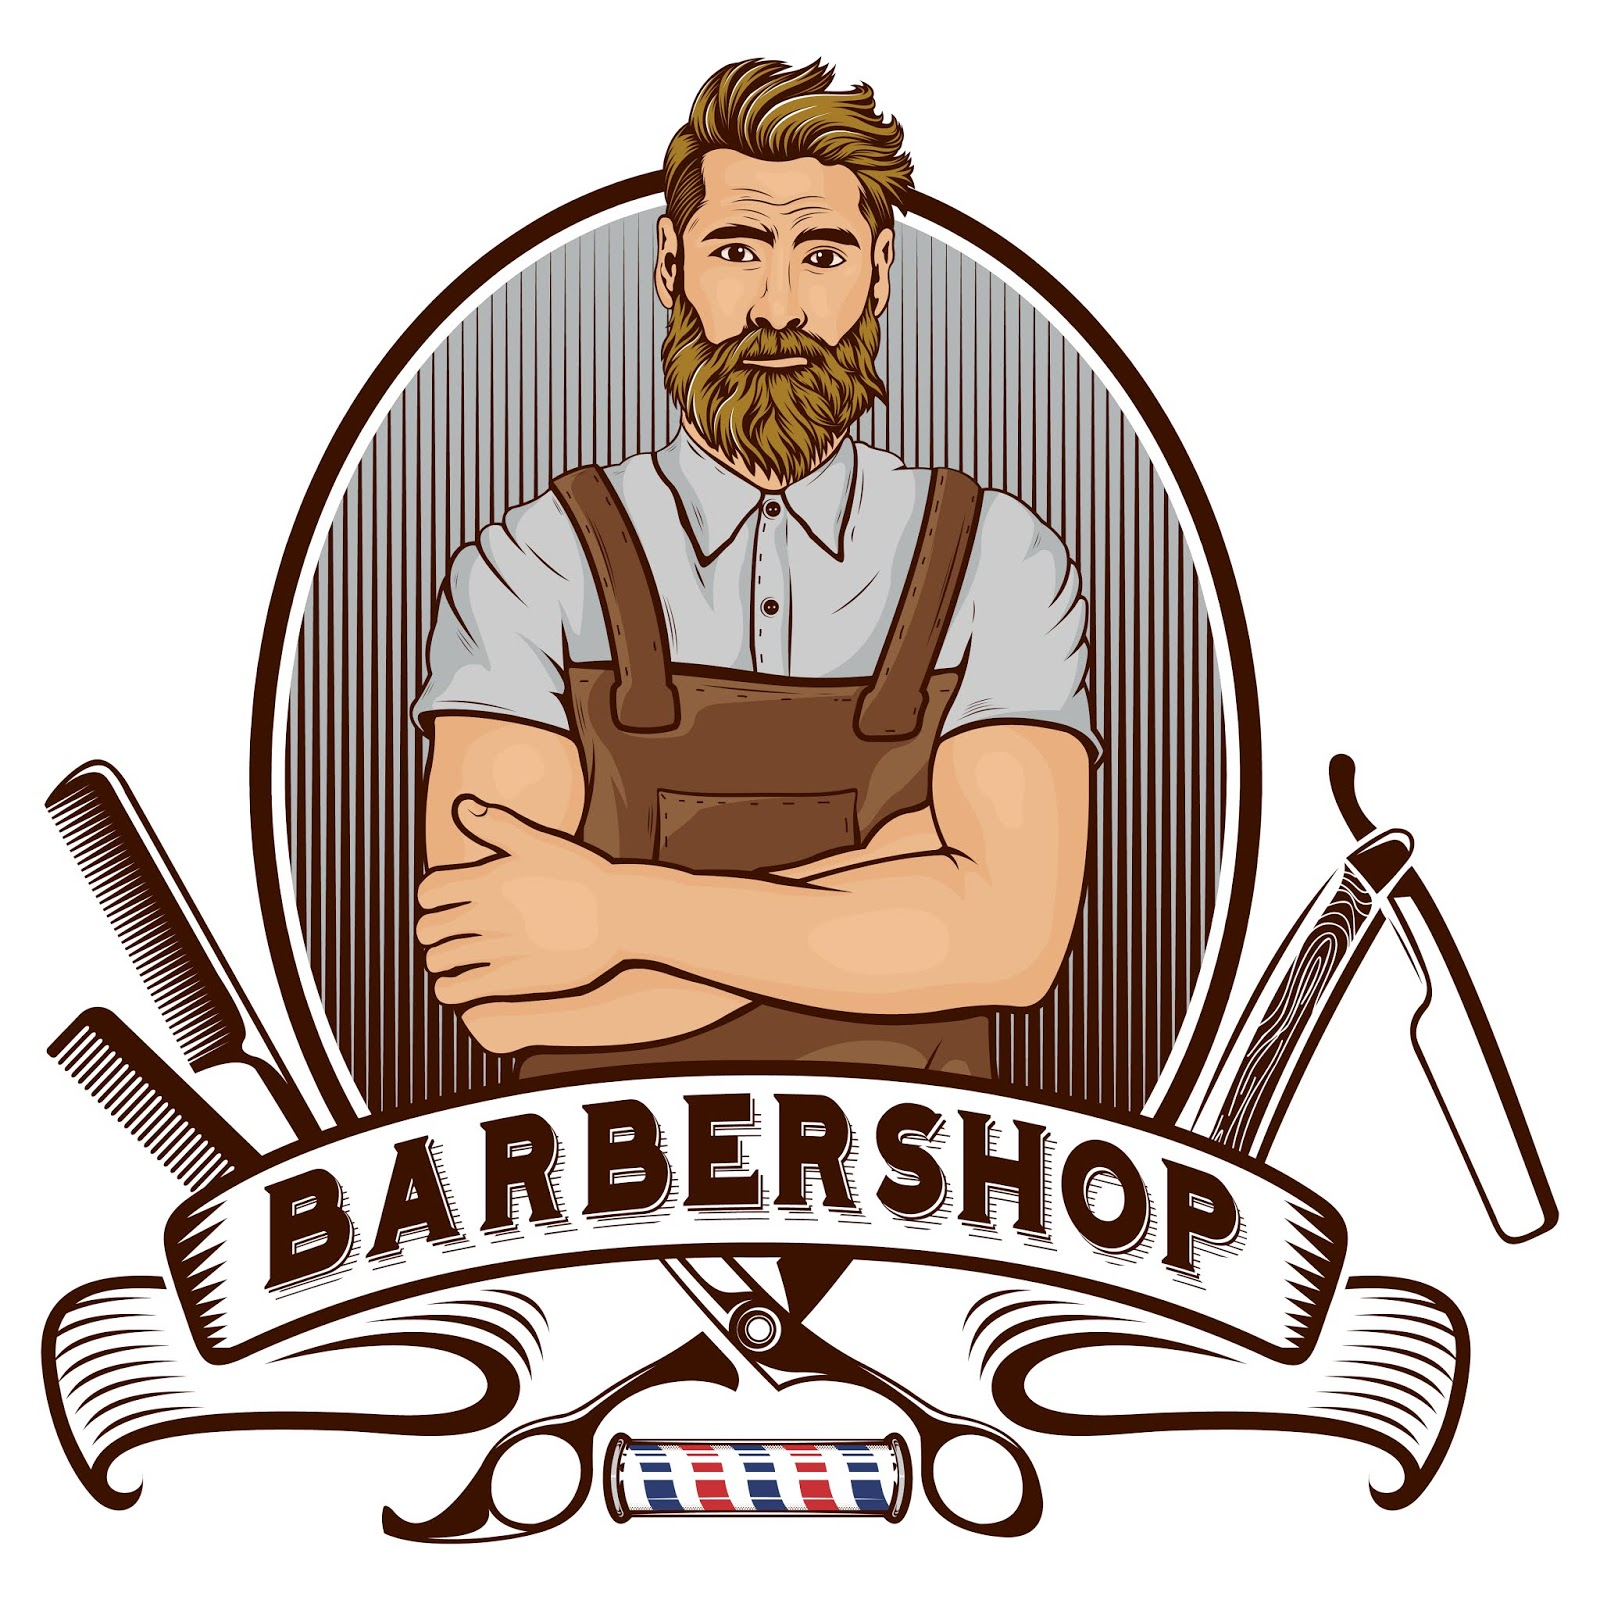 Barber Shop Mascot Free Download Vector CDR, AI, EPS and PNG Formats